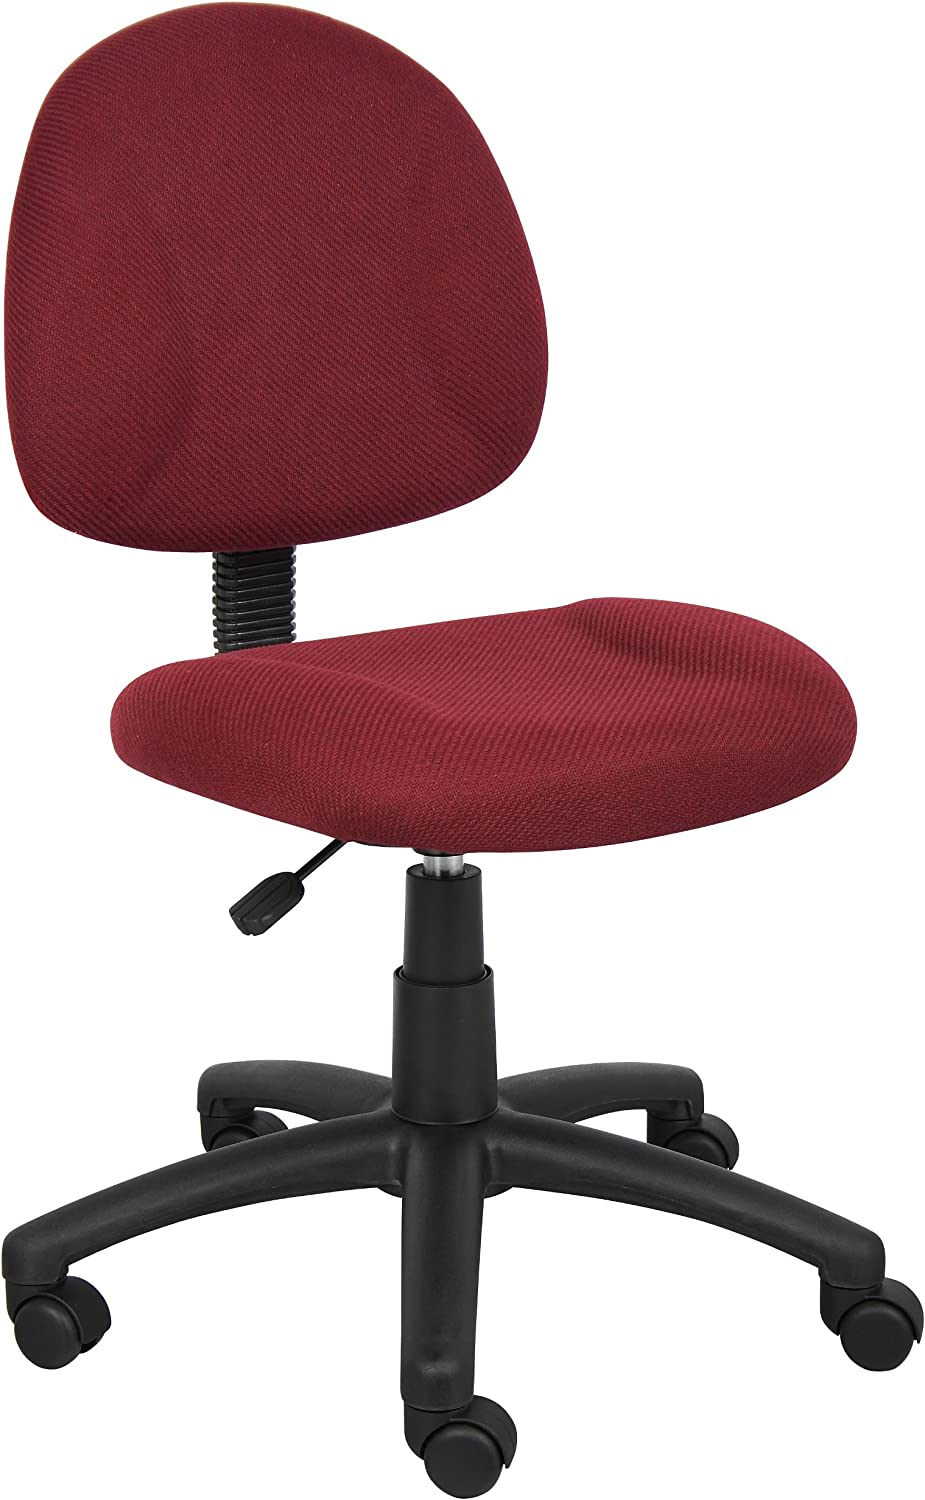 Boss Office Products B315-BY Perfect Posture Delux Fabric Task Chair without Arms in Burgundy